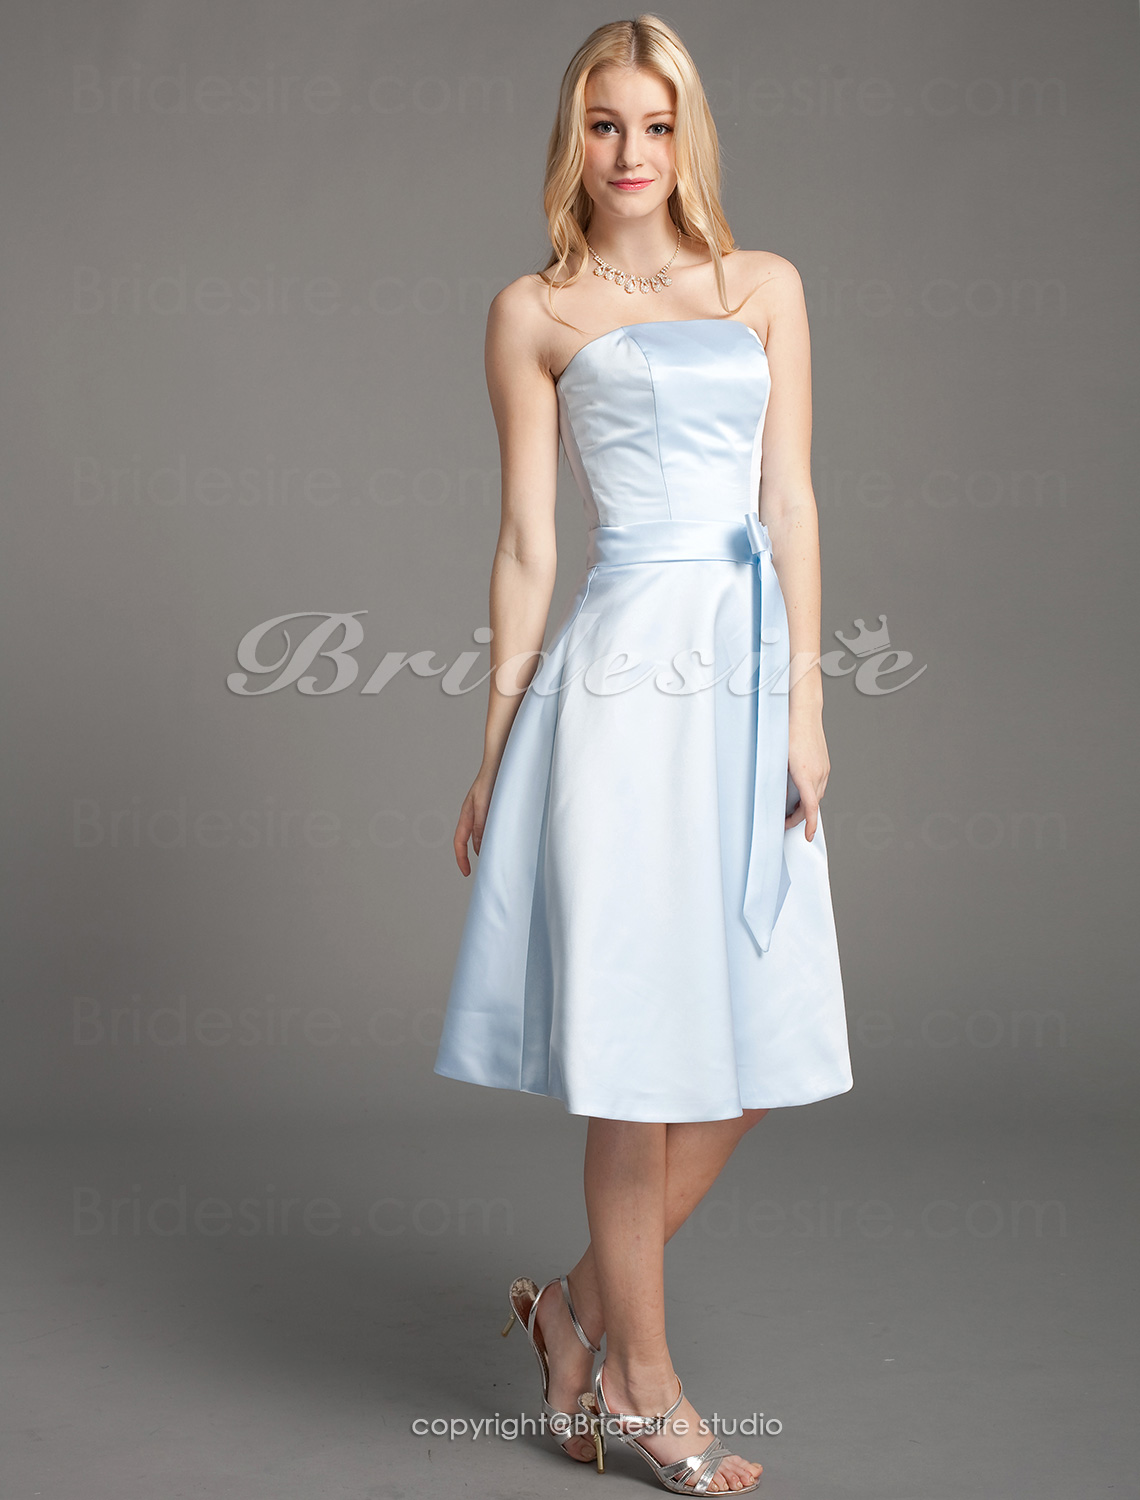 A-line Satin Princess Knee-length Strapless Bridesmaid/ Wedding Party Dress